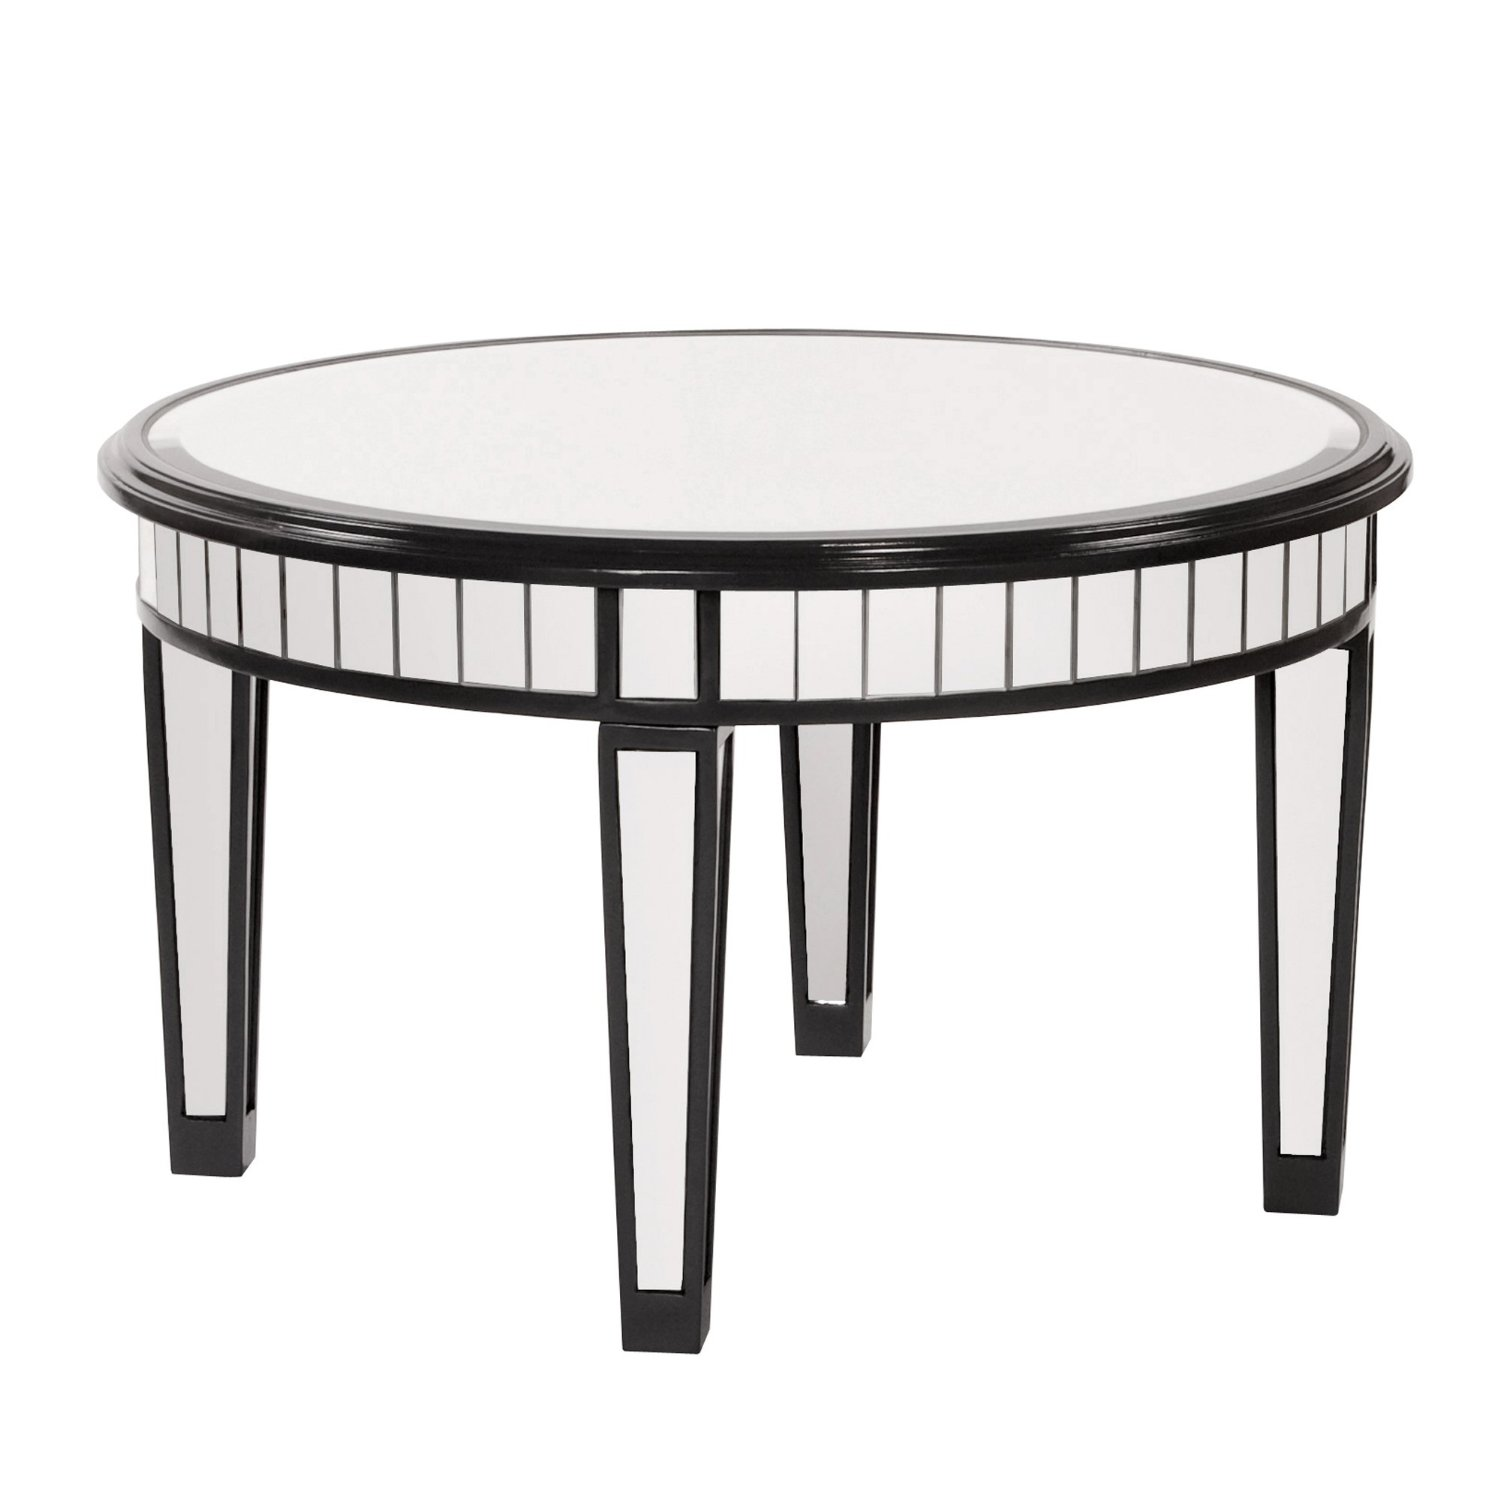 Round Mirrored Coffee Table Circle Mirrored Coffee Table Table Designs Amazon Mirrored Coffee Table Mirrored Coffee Table Sets (Image 6 of 10)